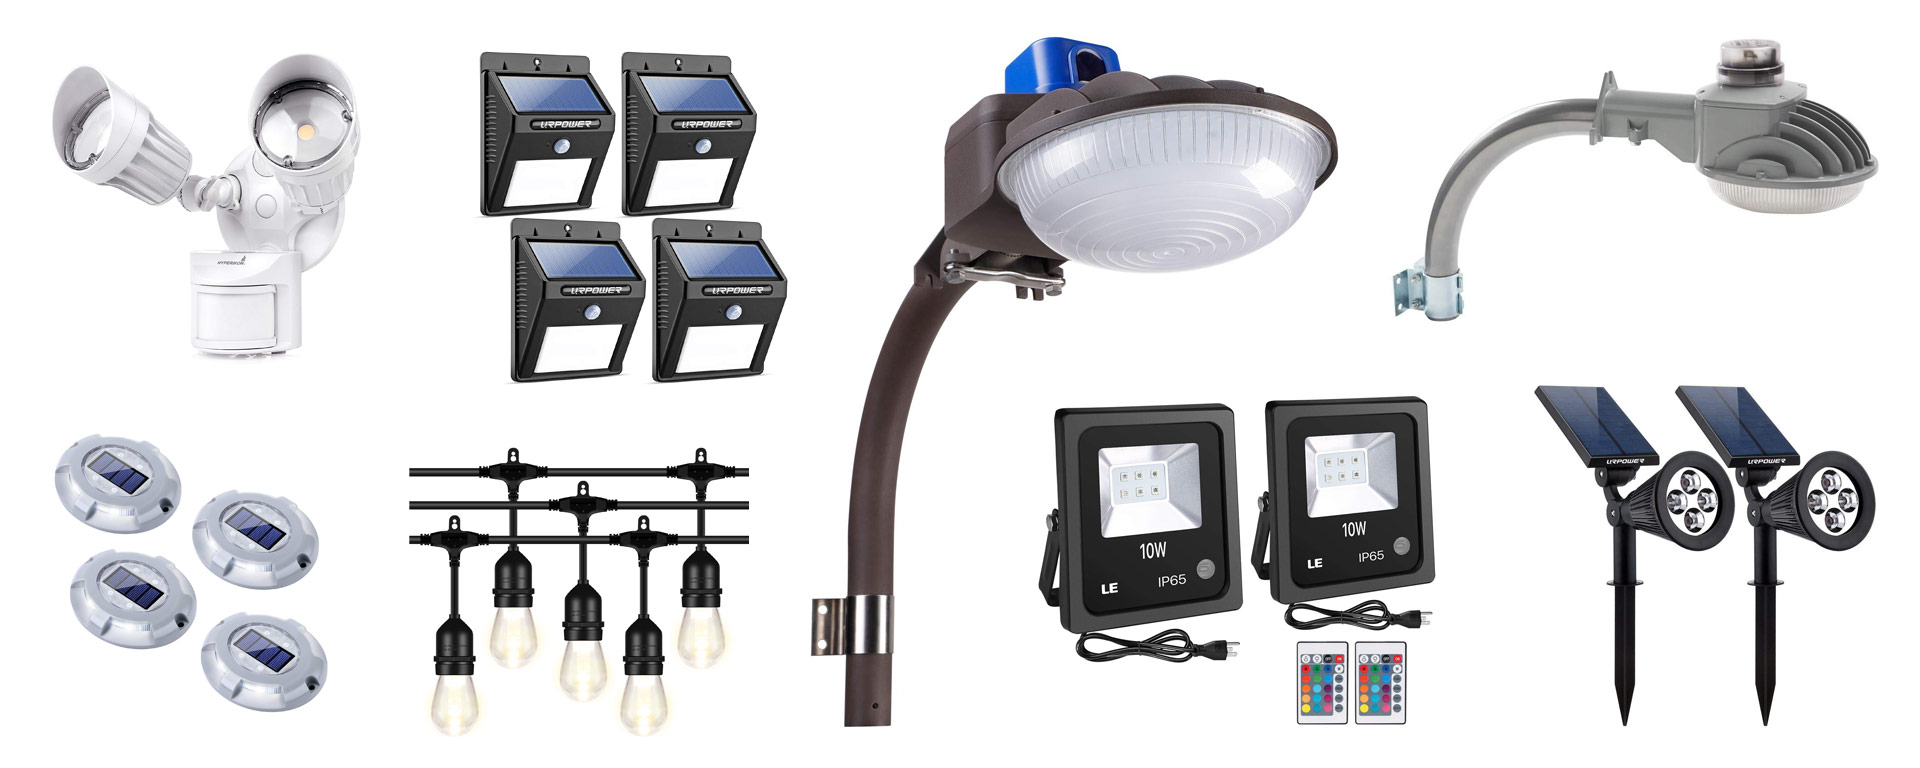 🥇12 Best LED Yard Lights - Outdoor Landscape Garden Lighting